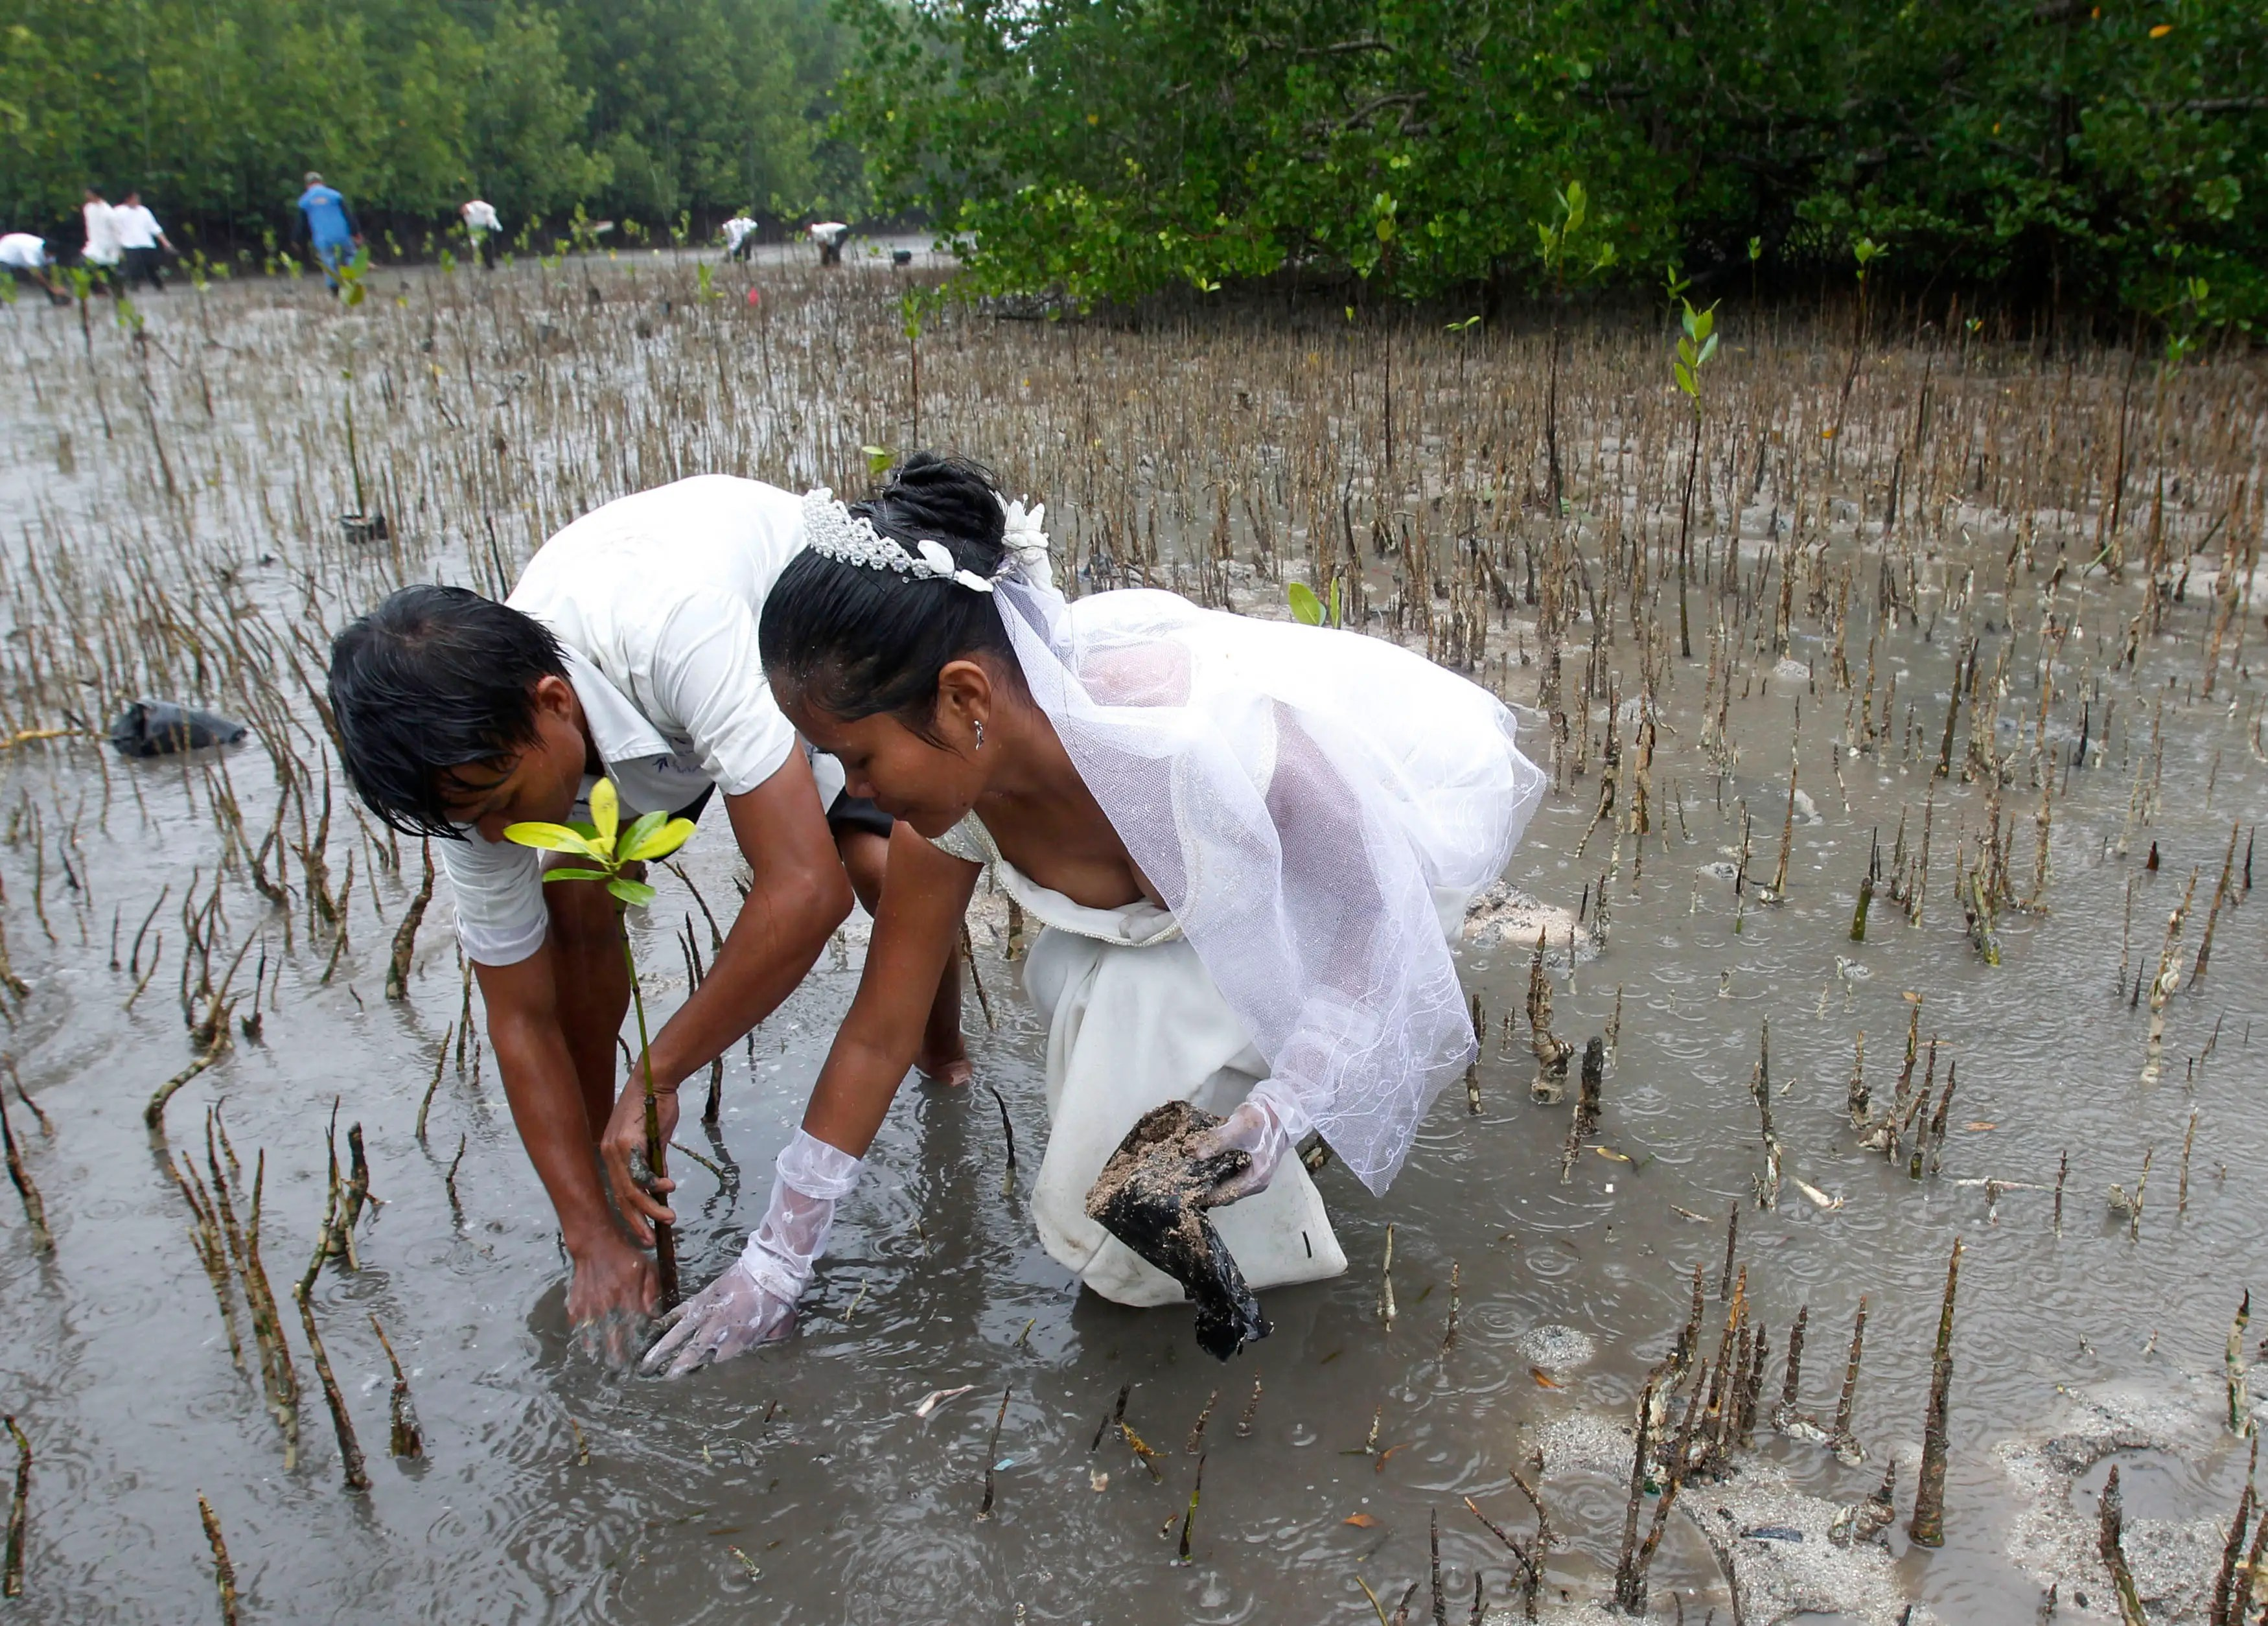 Joey Bayo and his wife Lea plant a mangrove tree after their wedding in San Jose town, Puerto Princesa, Palawan city, western Philippines.